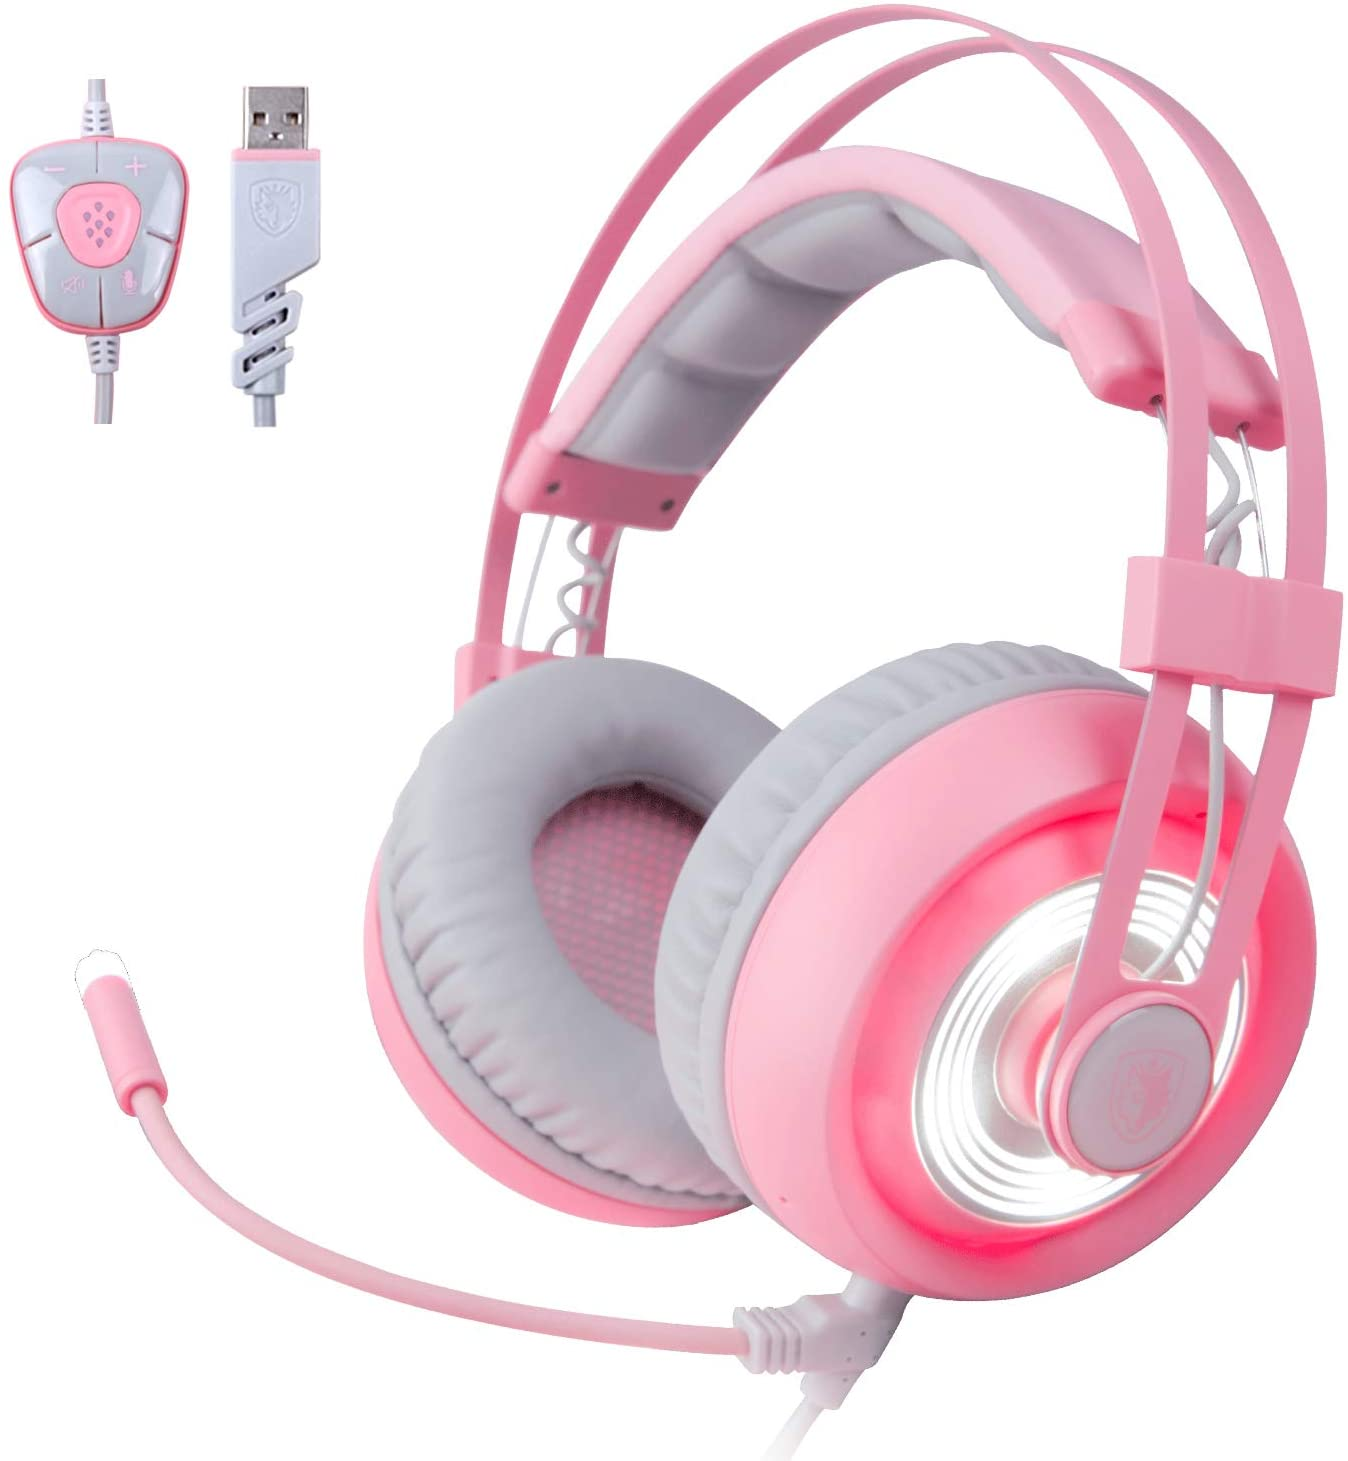 SADES G70 7.1 Surround Sound USB Pink PC Headset Over-Ear Gaming Headset Headphones with Microphone LED Light